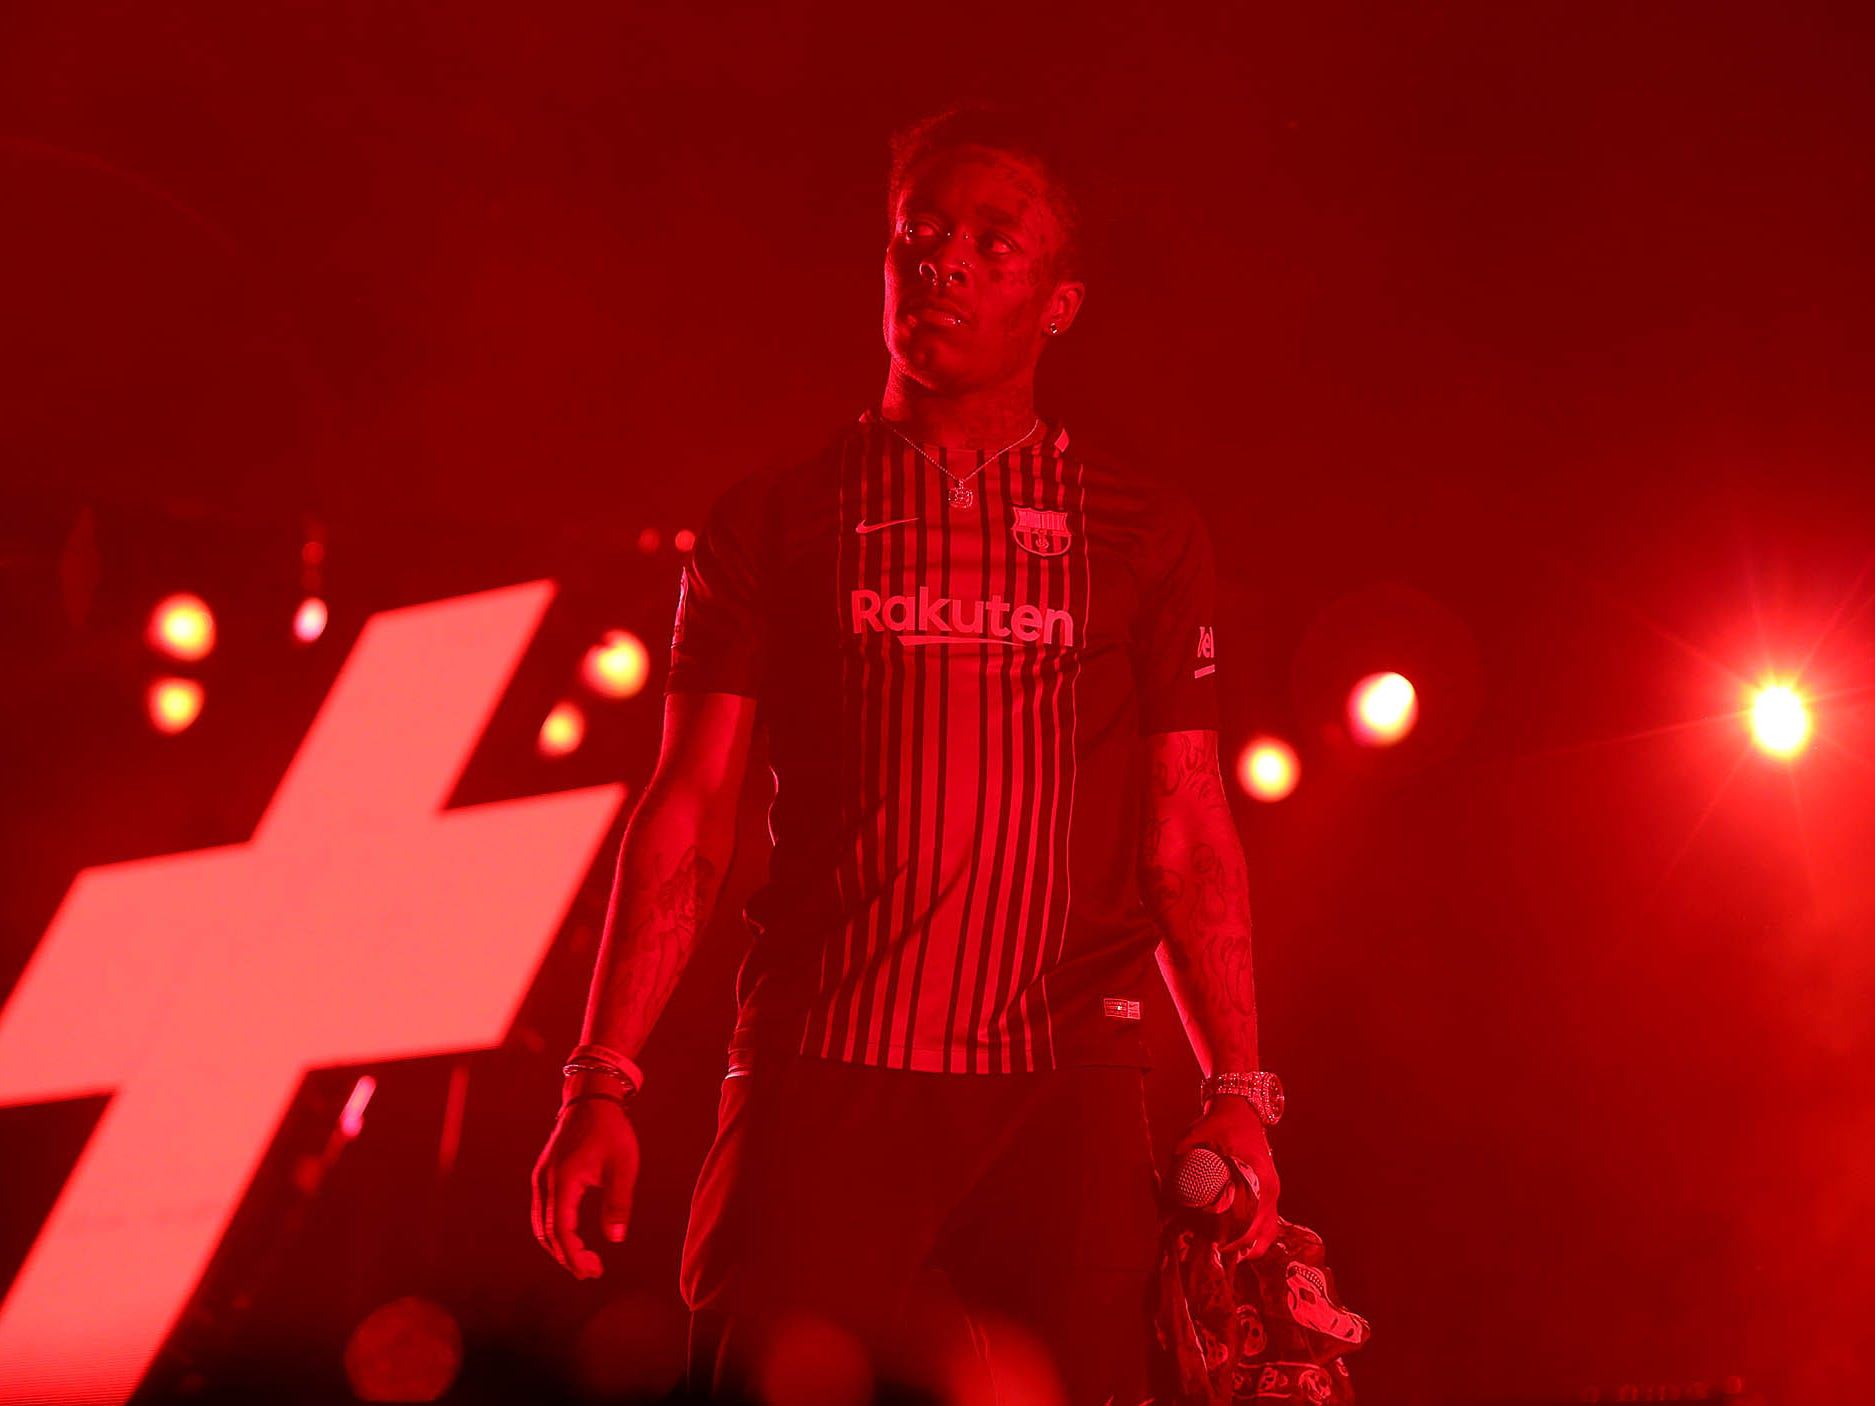 Lil Uzi Vert performs during G-Eazy's The Endless Summer Tour at Ak-Chin Pavilion in Phoenix on Aug. 3, 2018.